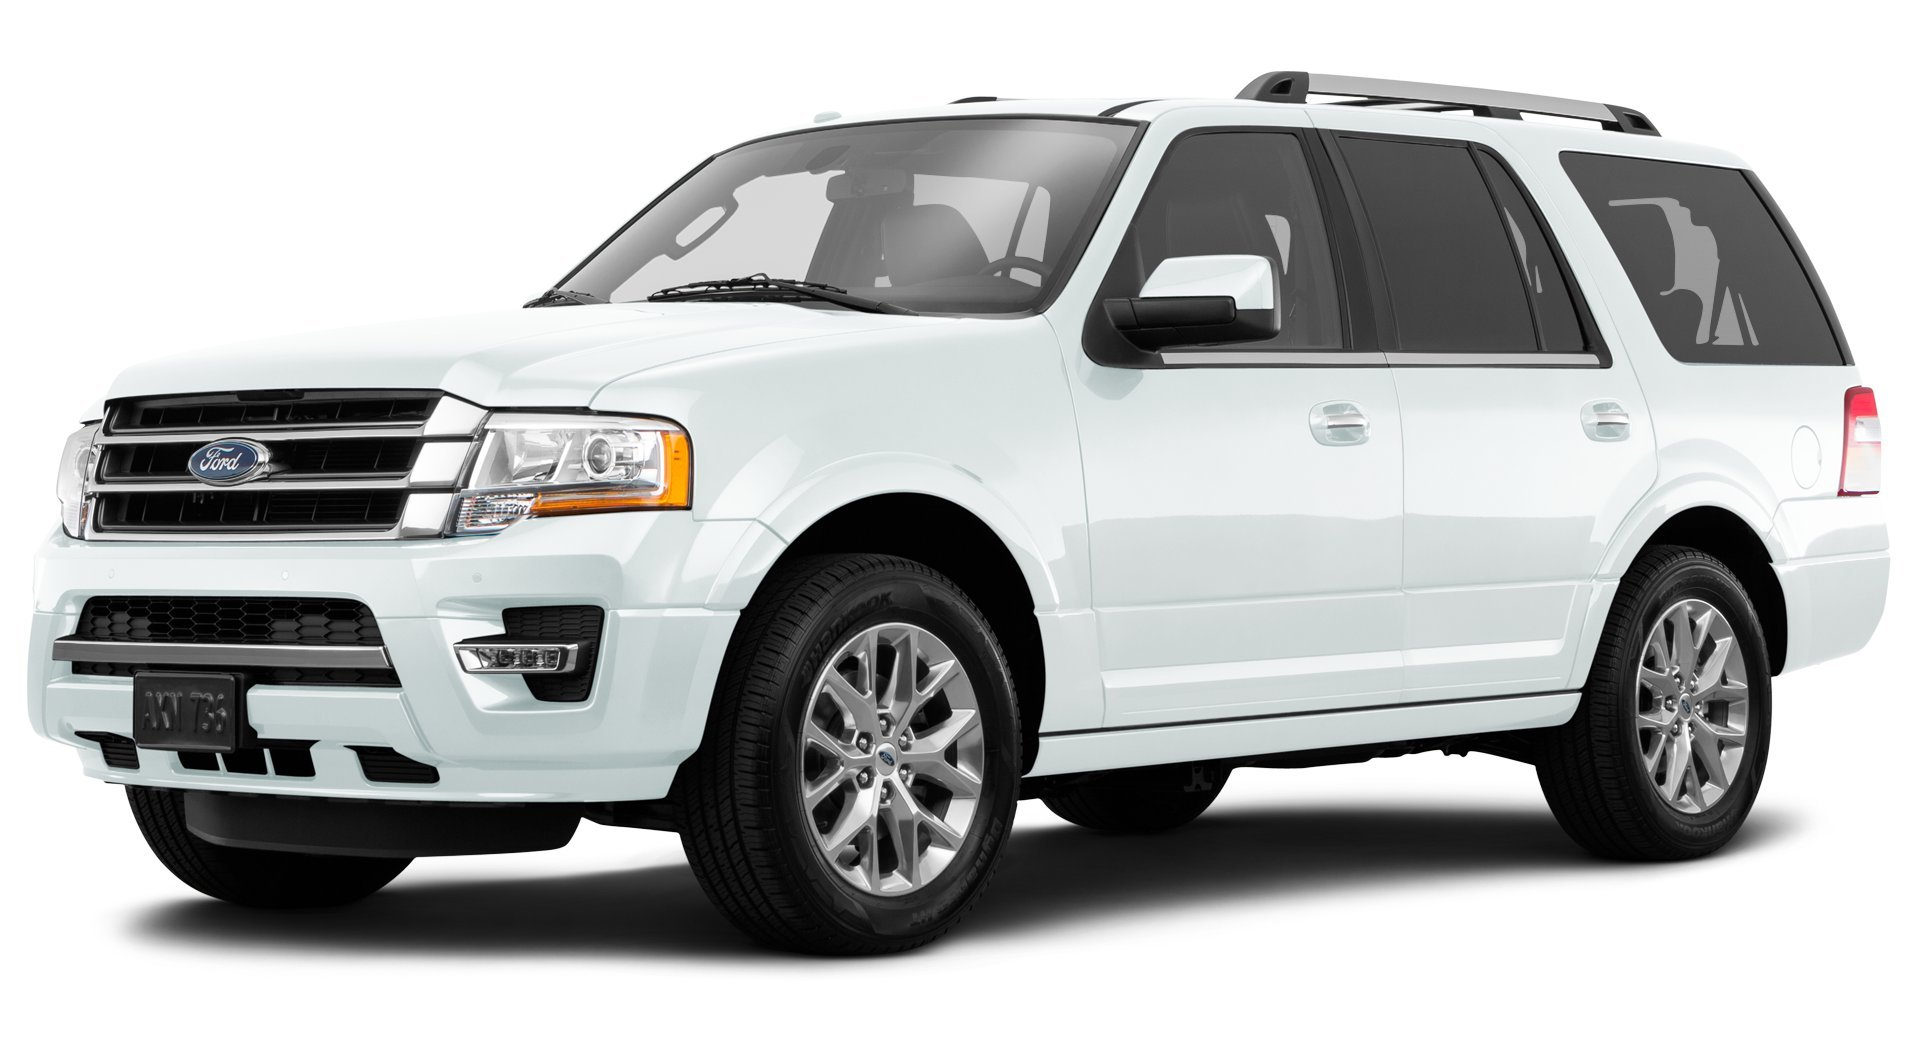 71tVIgcxfLL Cool Review About 2000 ford Expedition Mpg